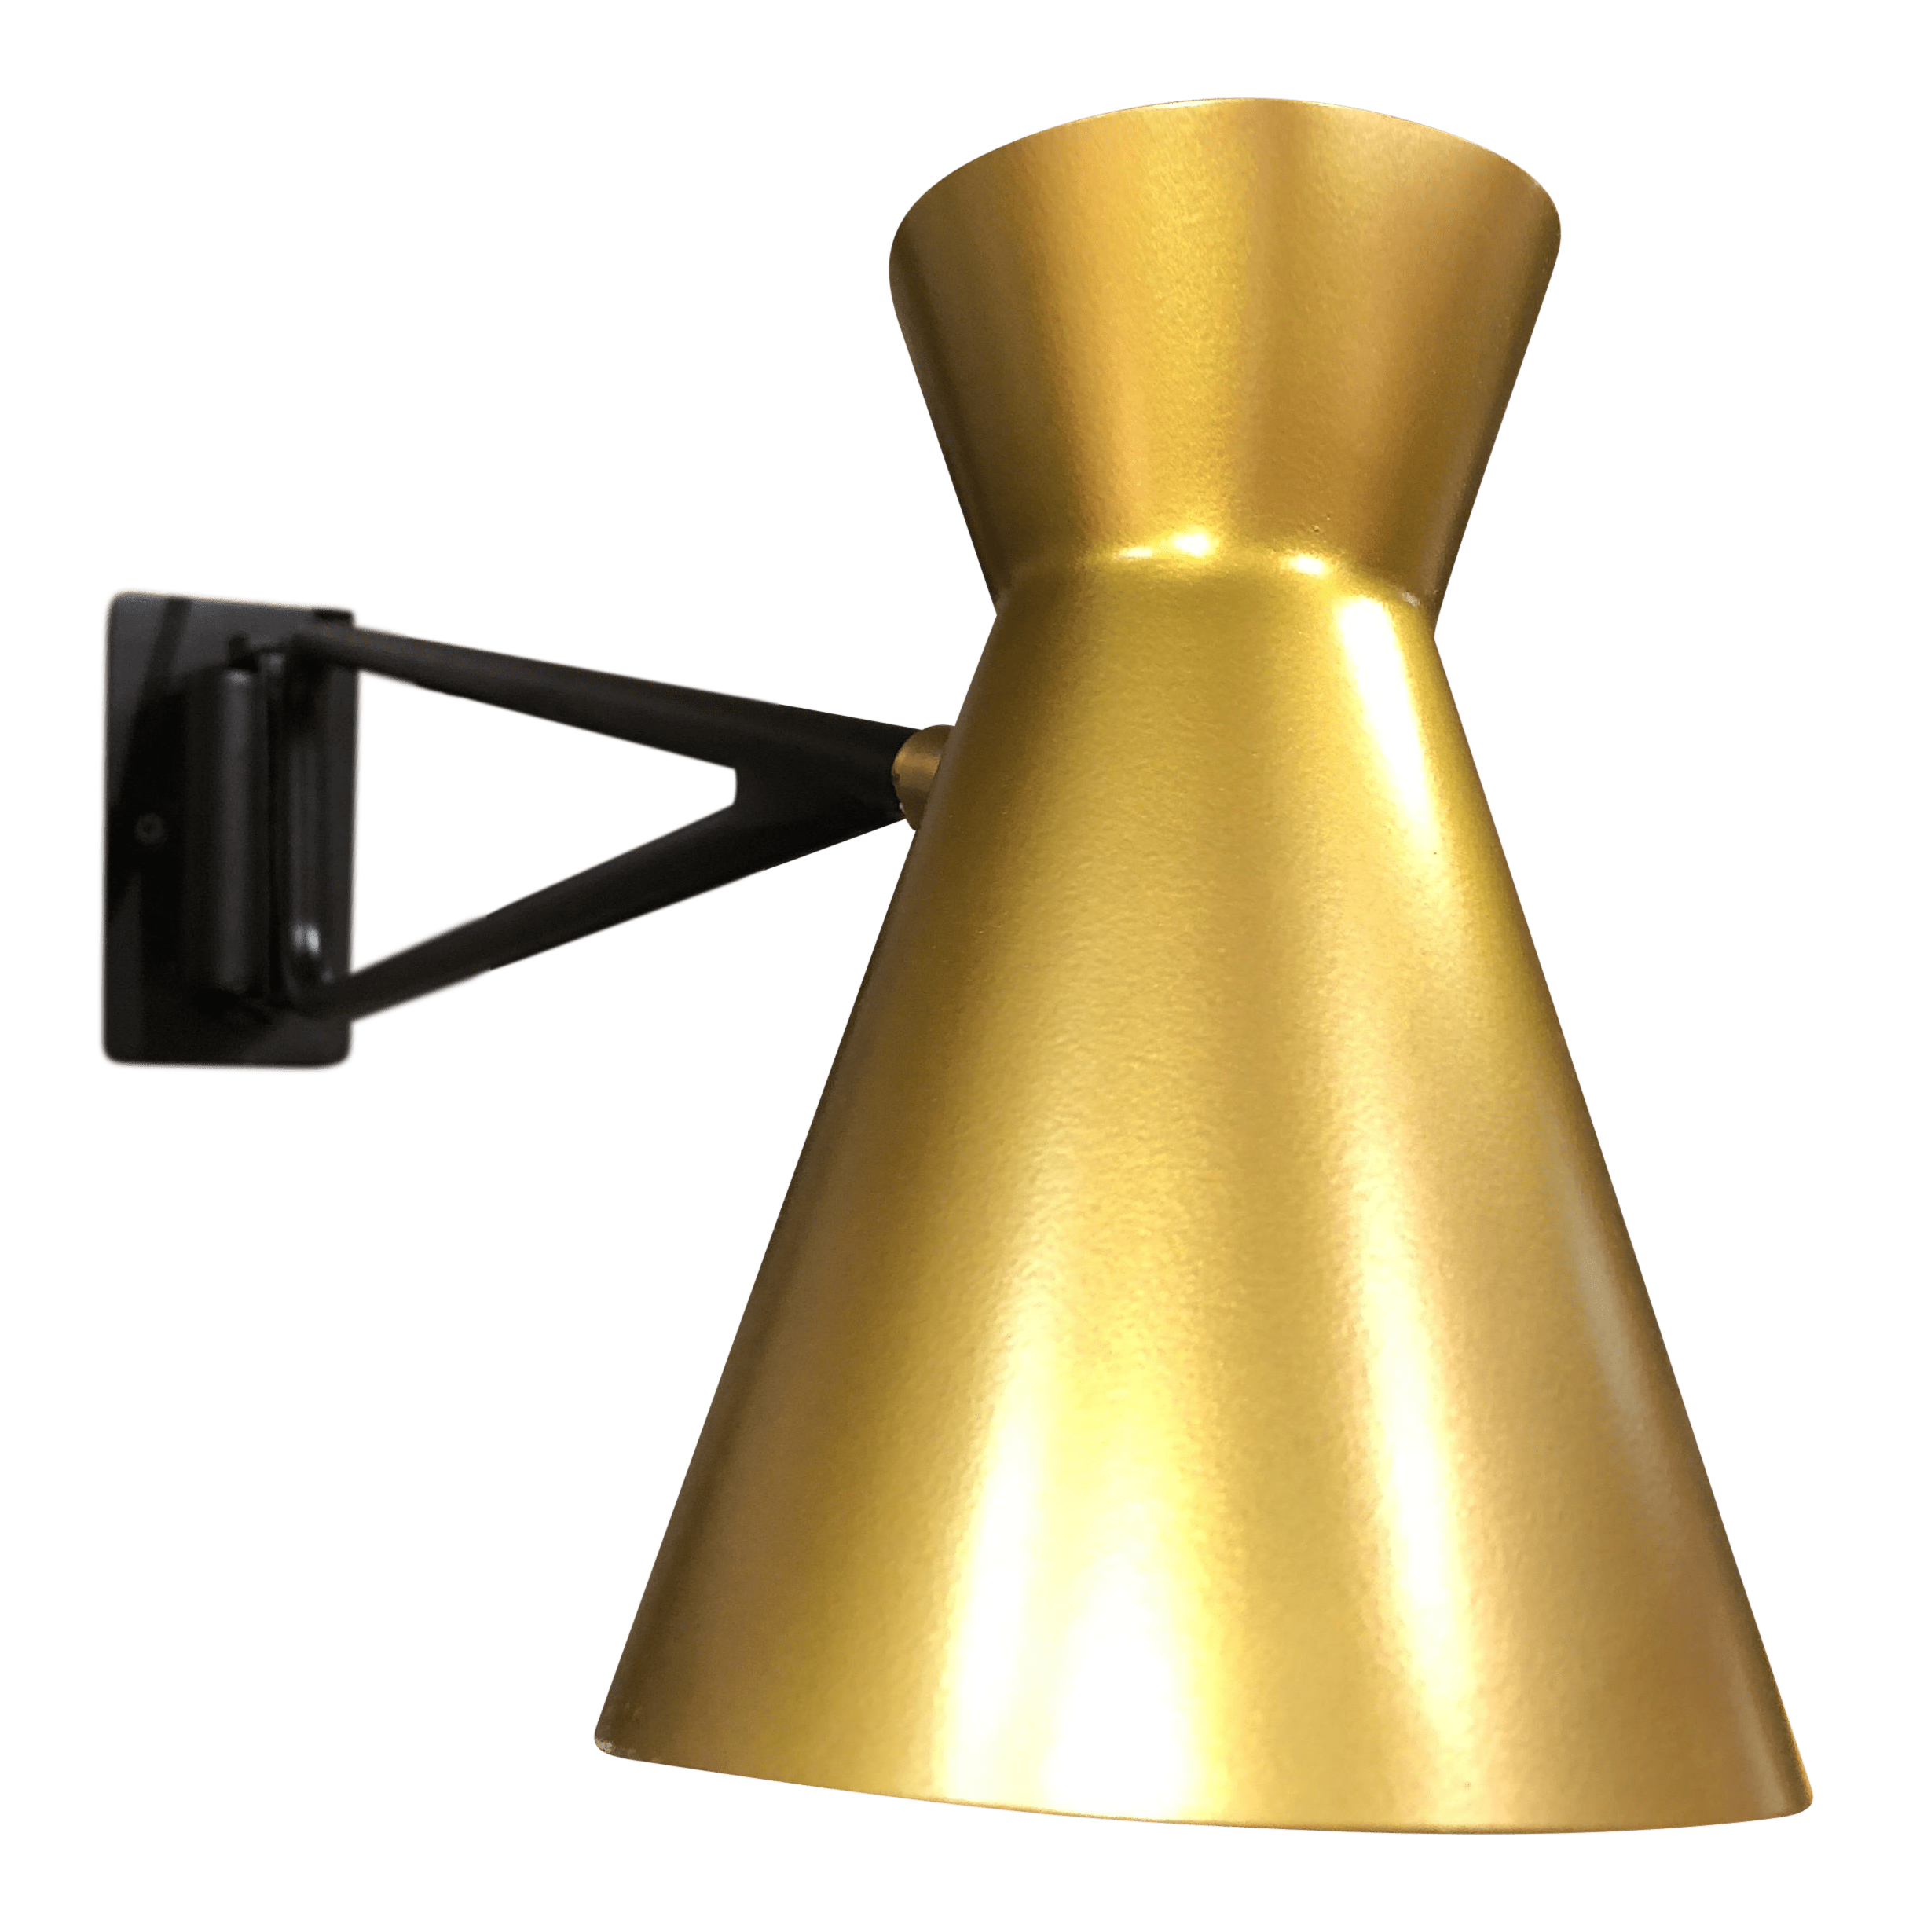 Mid Century Swing Arm Wall Lamp Black And Gold Mid Century Modern Style Swing Arm Wall